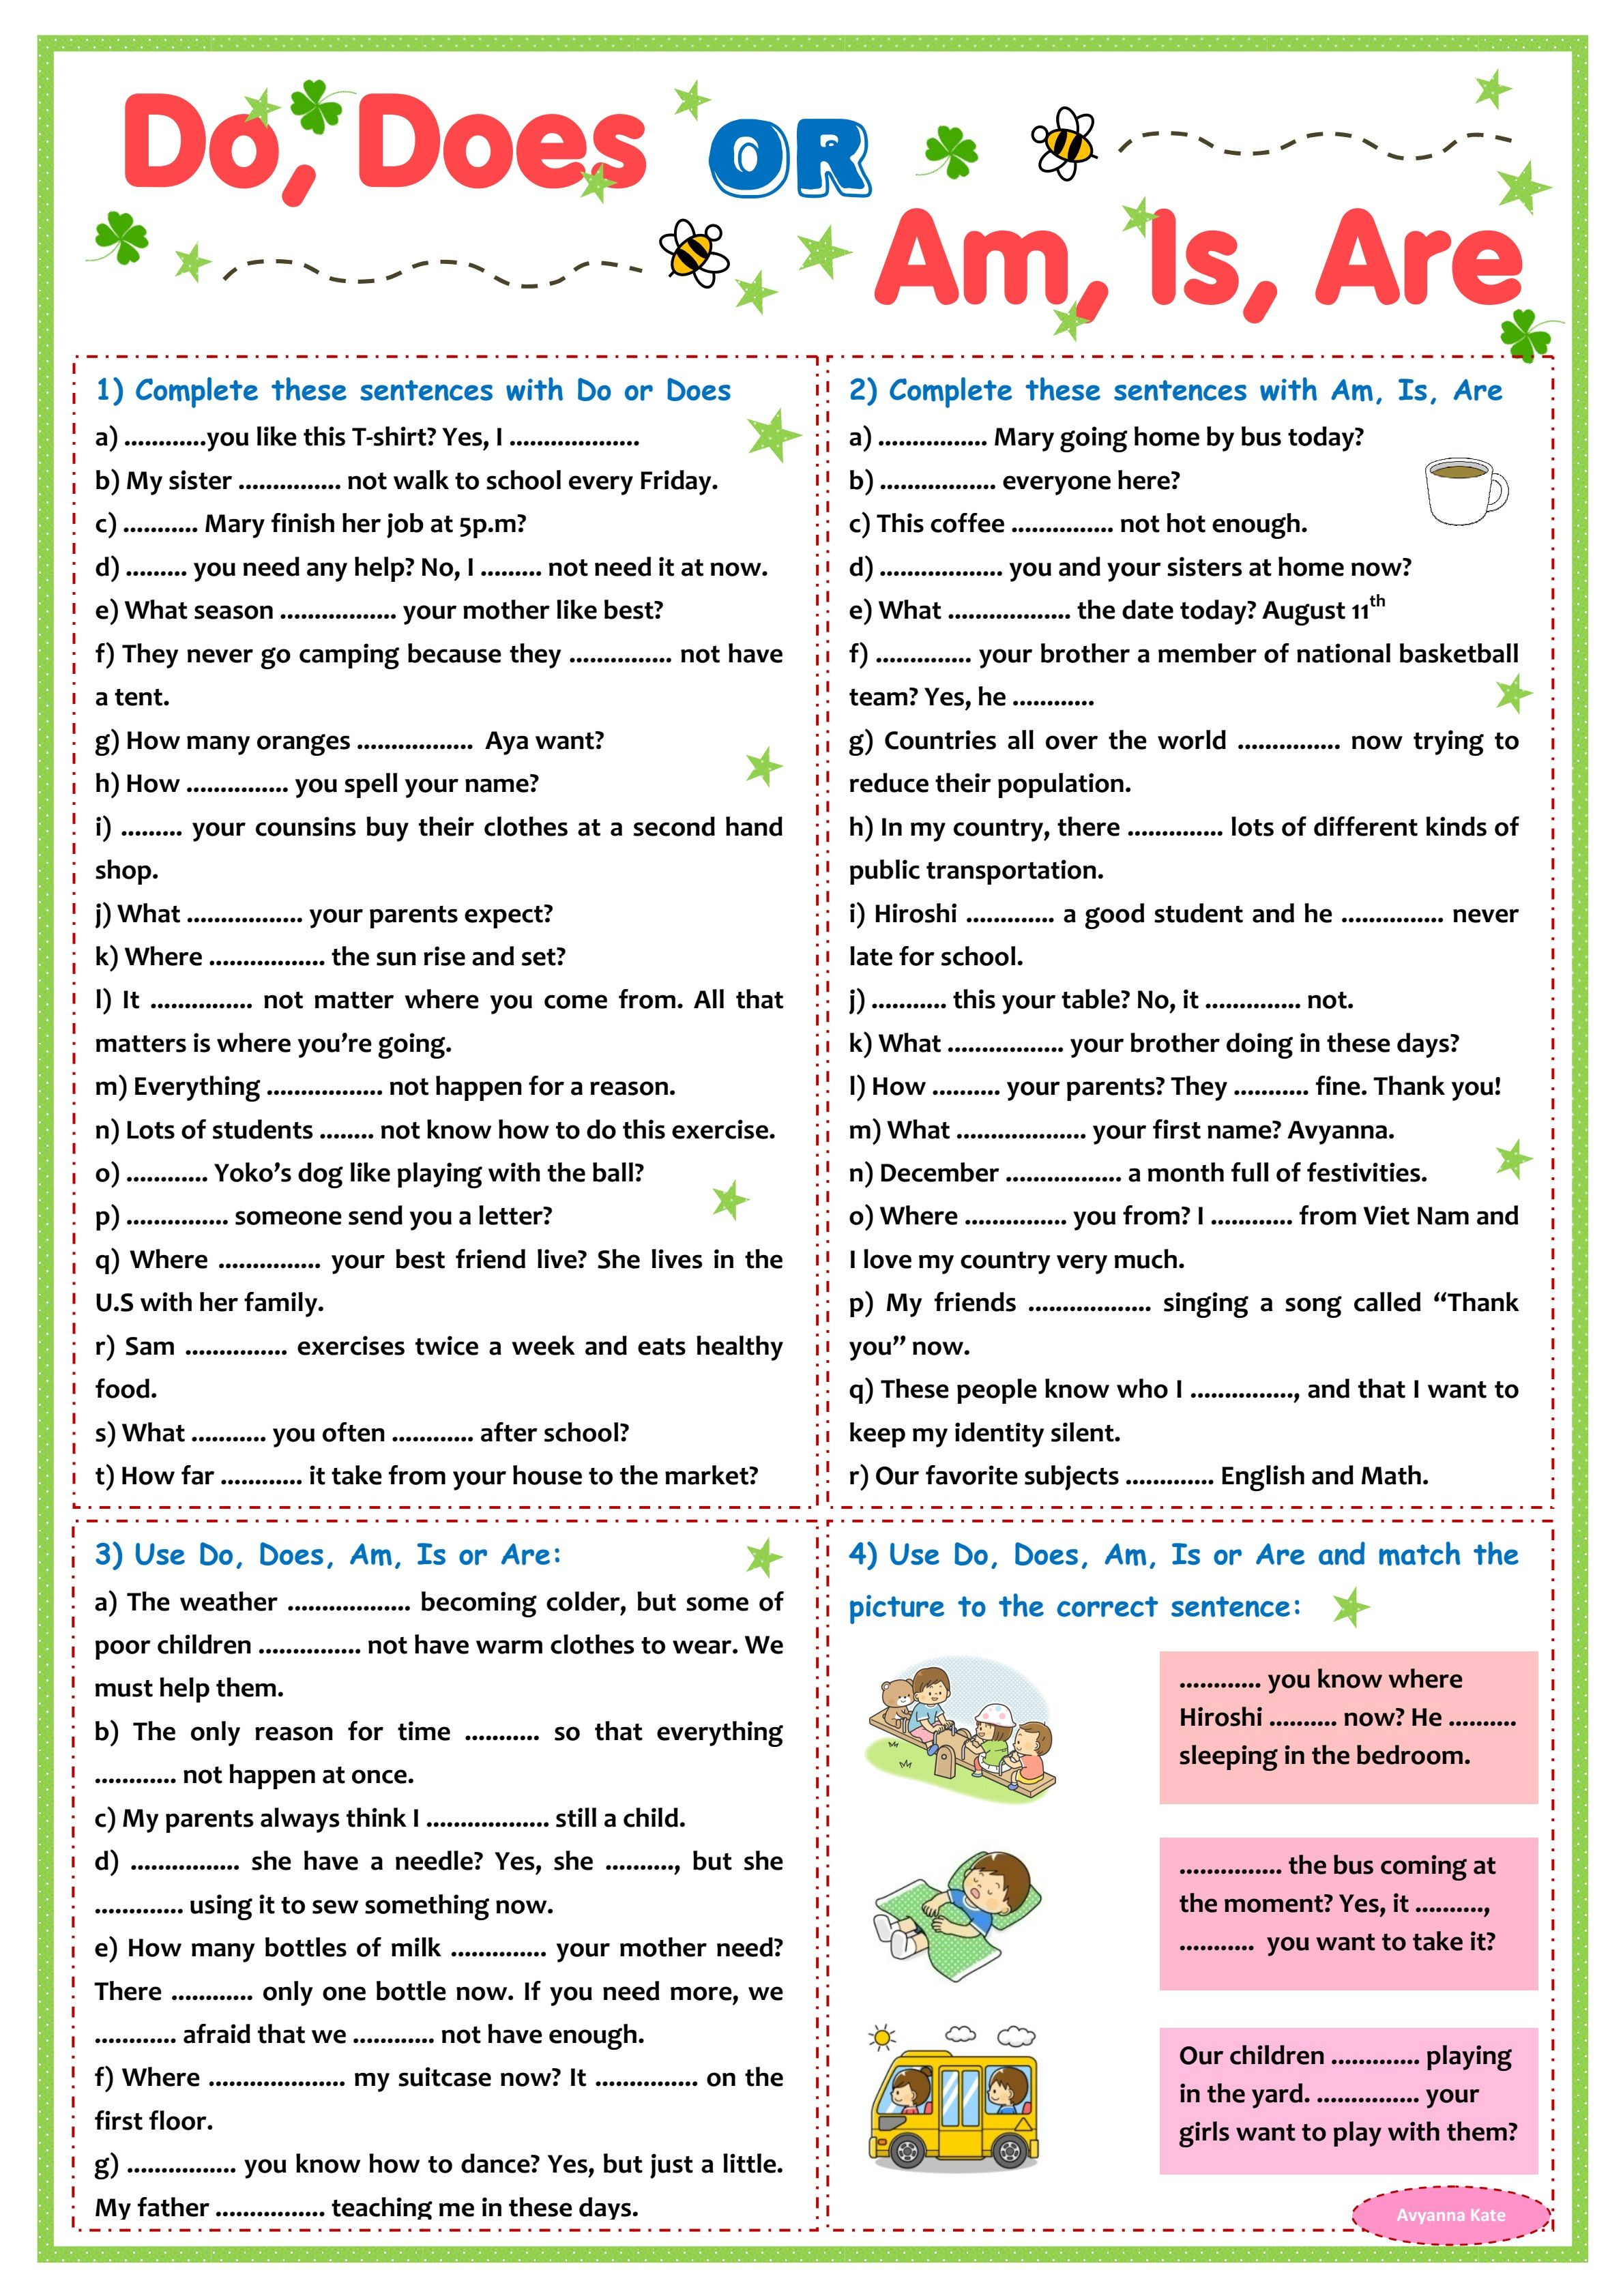 Practice Do Does And Am Is Are Printable Sheet English Teacher Resources English Grammar Exercises Grammar For Kids [ 3366 x 2379 Pixel ]